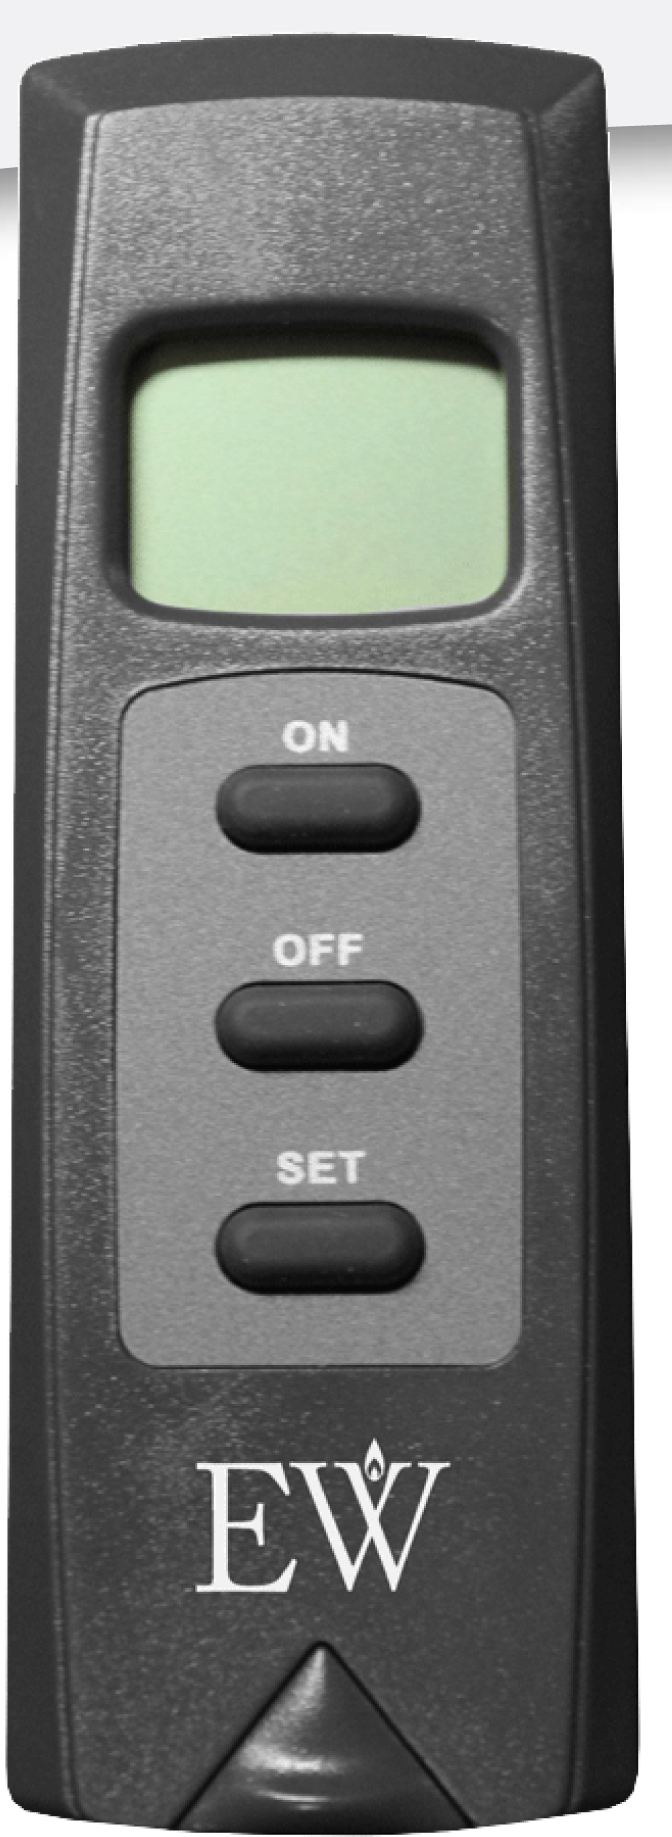 Remote Controls For Fmi Direct Vent Fireplaces